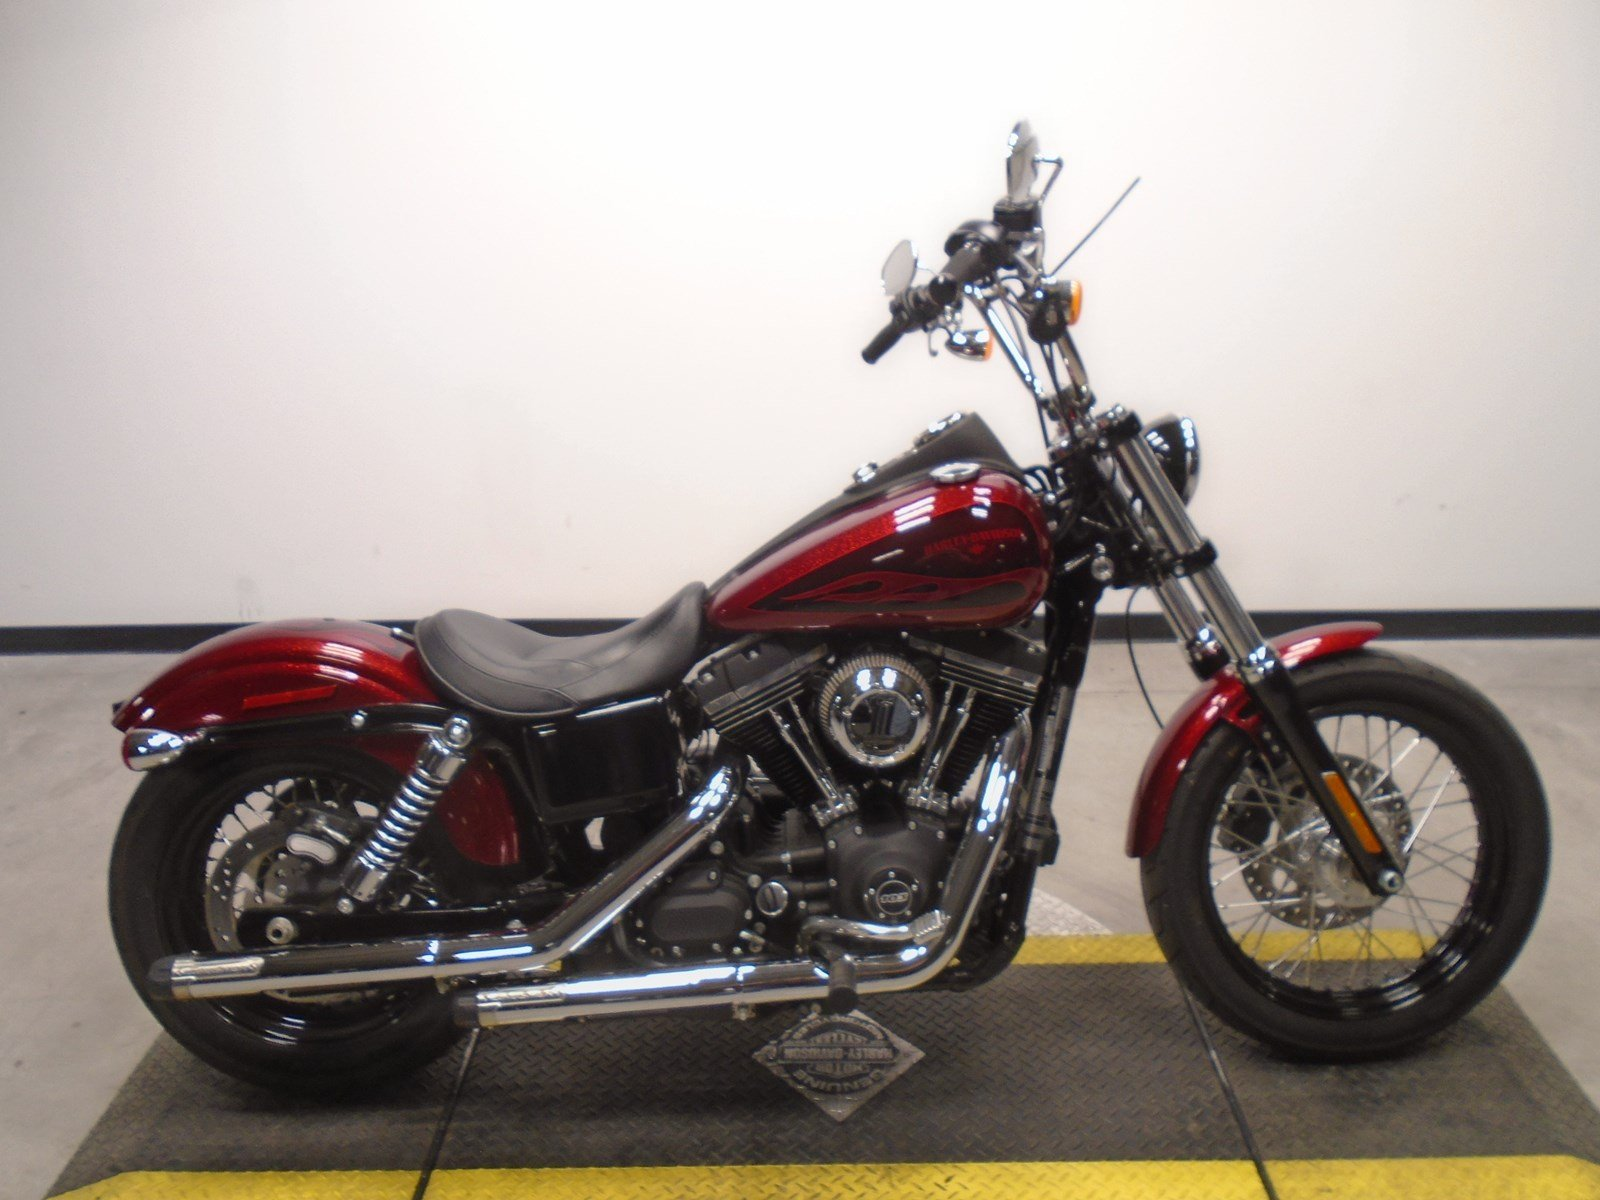 Pre-Owned 2017 Harley-Davidson Dyna Street Bob FXDB Dyna in ... on ford ignition module wiring diagram, ford electronic ignition wiring diagram, coil wiring diagram, harley ignition module wiring diagram, harley wiring diagrams pdf, omc ignition wiring diagram, ultima ignition wiring diagram, harley softail starter diagram, harley ignition systems, universal ignition switch diagram, harley wire diagram, 2001 sportster ignition system diagram, harley chopper wiring harness, motorcycle ignition wiring diagram, massey ferguson starter wiring diagram, harley single fire ignition wiring diagram, ignition starter switch diagram, harley davidson starter wiring, harley ignition diagram for dummies, mallory ignition wiring diagram,